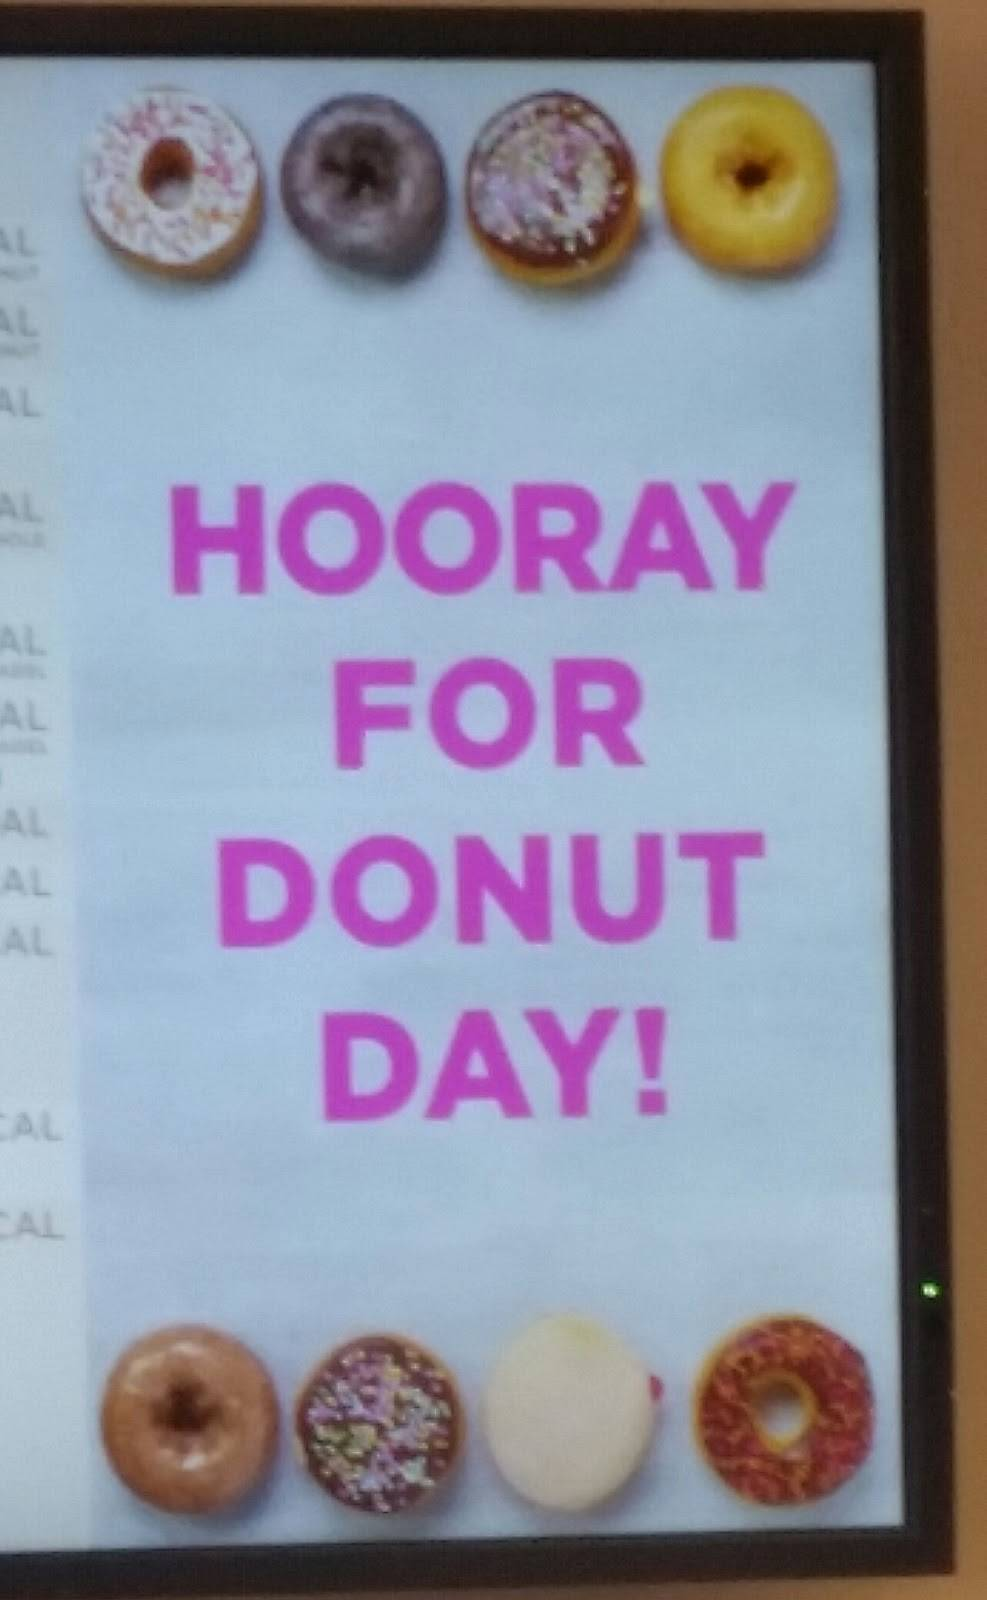 Dunkin Donuts   cafe   16242 S Halsted St, Harvey, IL 60426, USA   7083315801 OR +1 708-331-5801